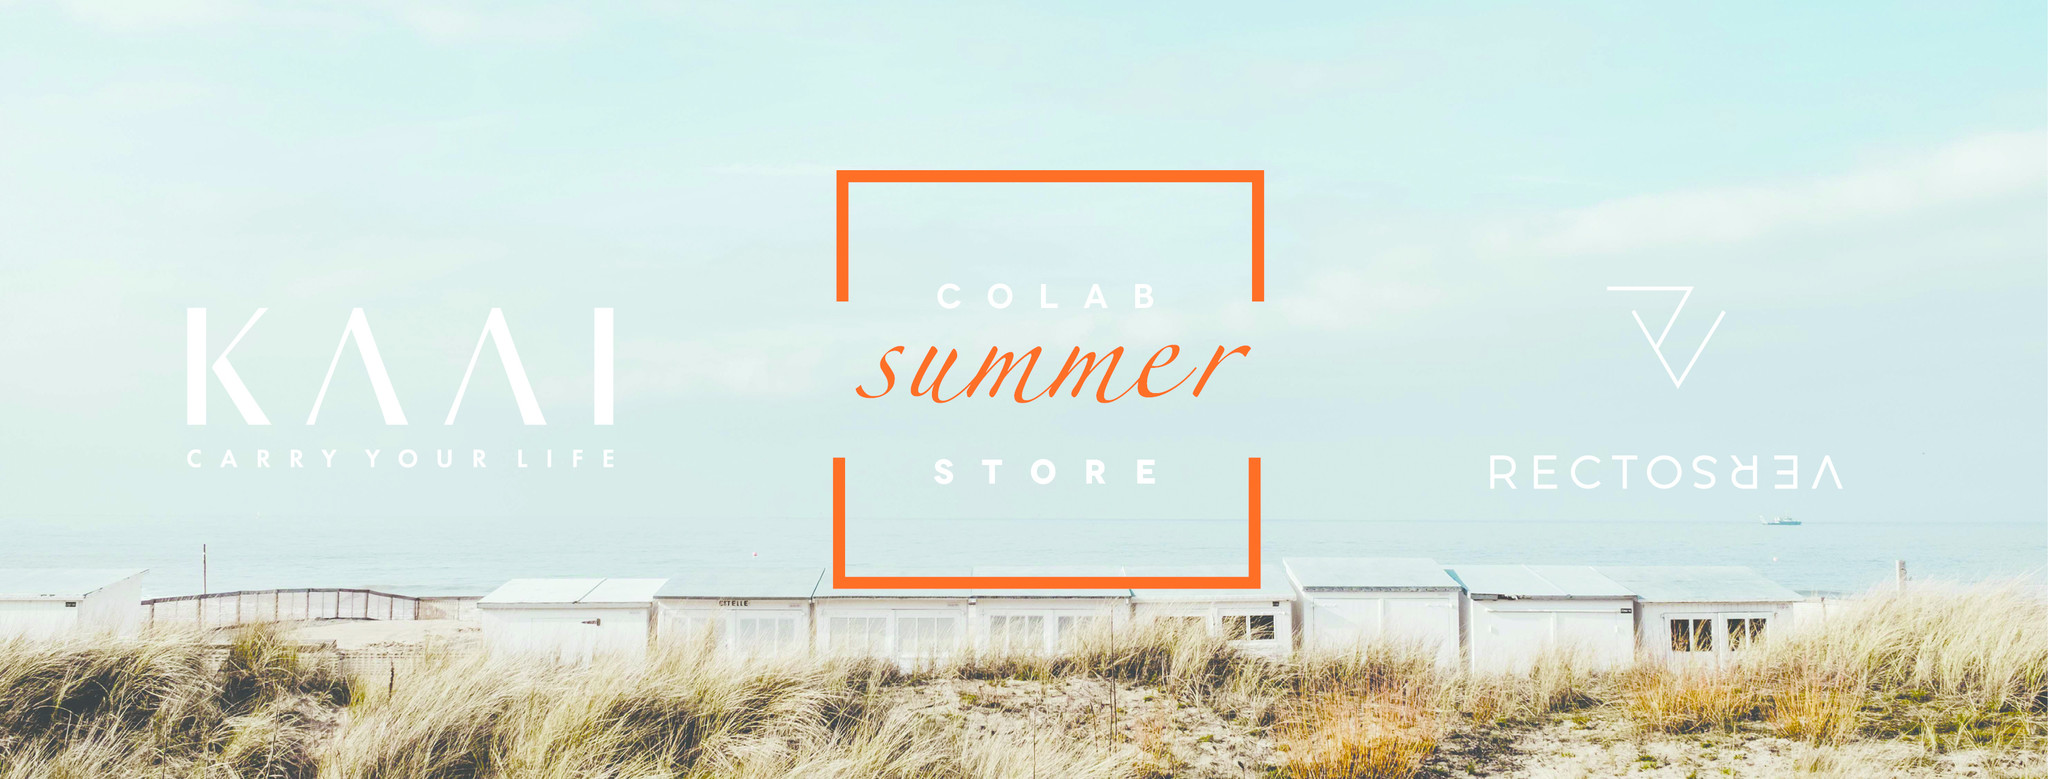 CoLab Summer Store